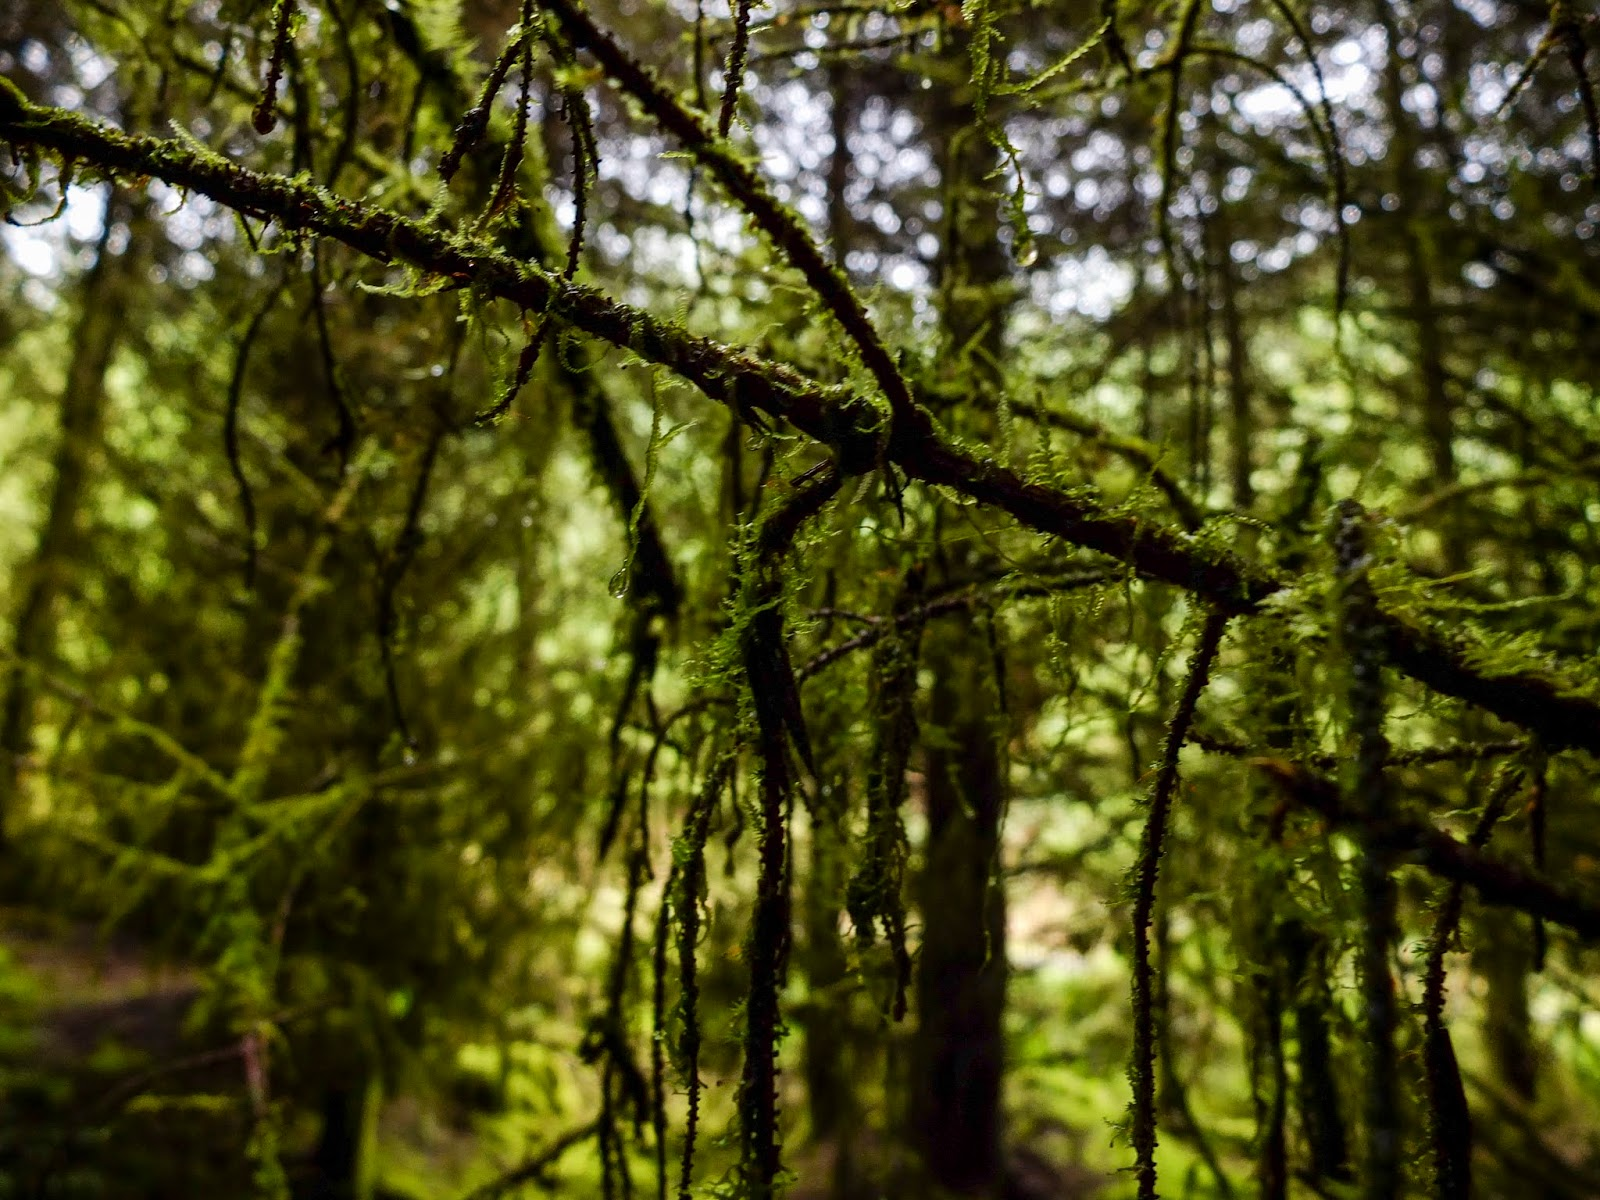 Moss hanging off tree branches inside a forest.